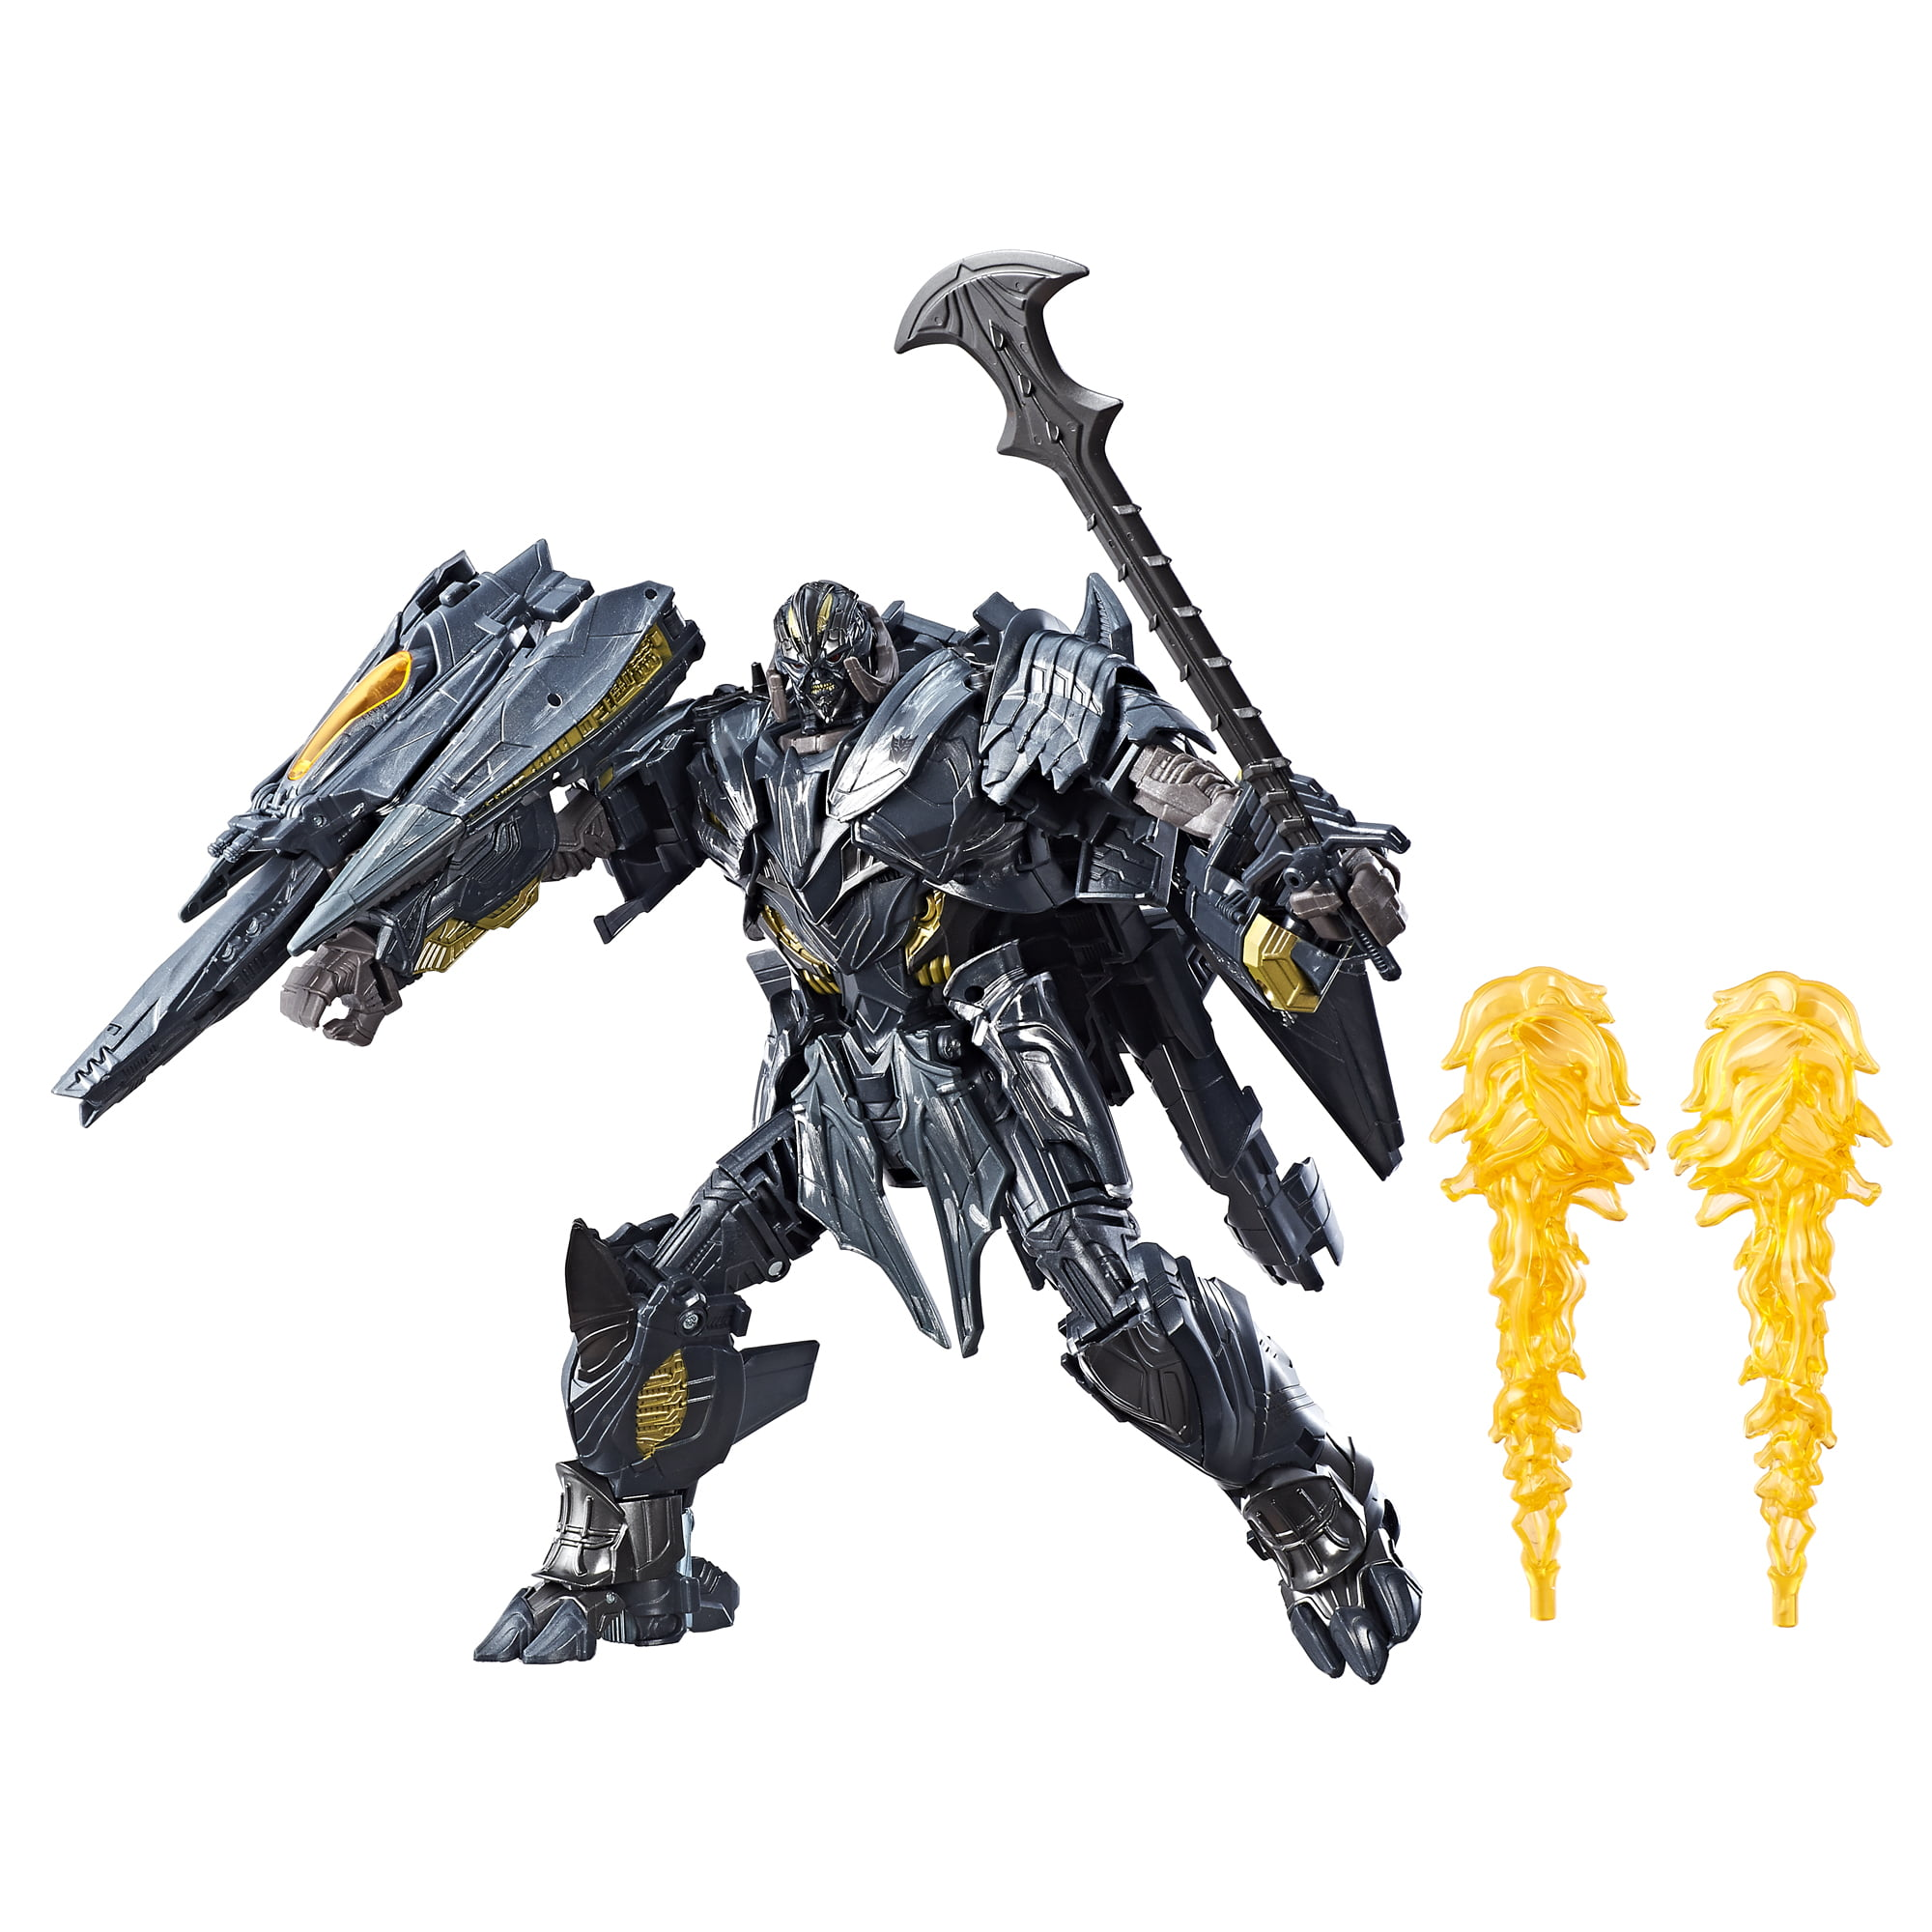 Transformers: The Last Knight Premier Edition Leader Class Megatron by Hasbro Inc.